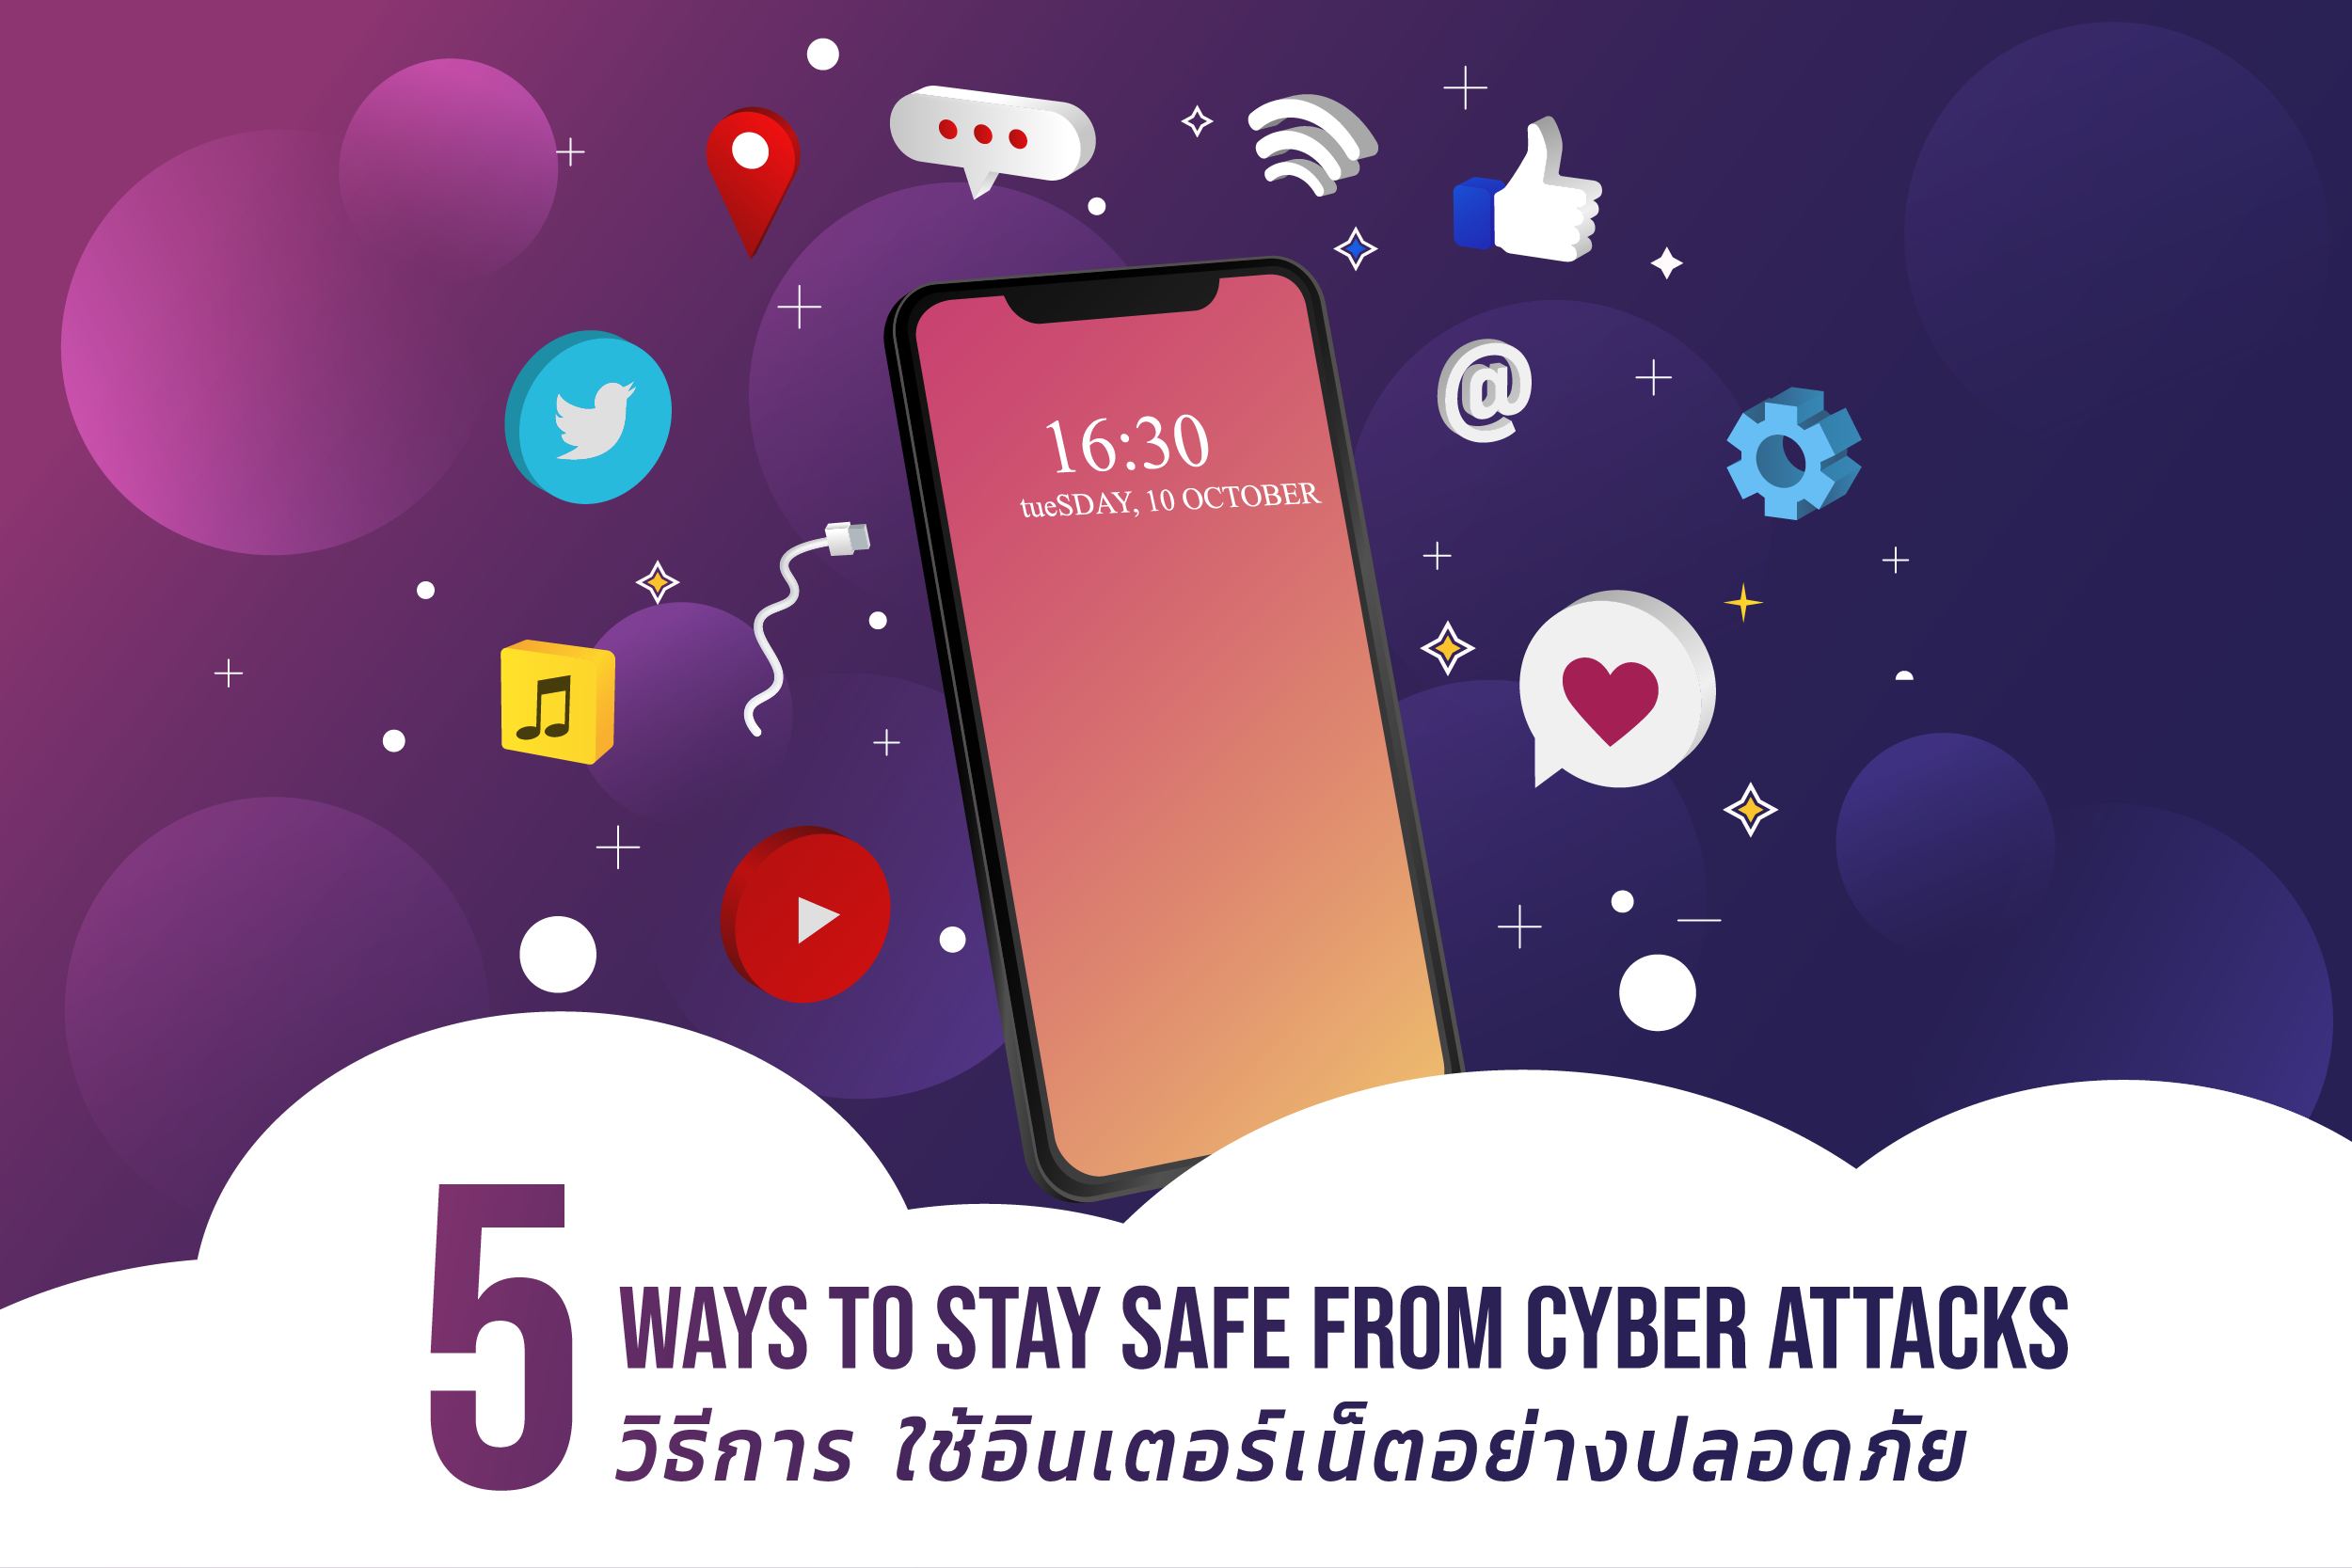 5 Ways to Stay Safe from Cyber Attacks